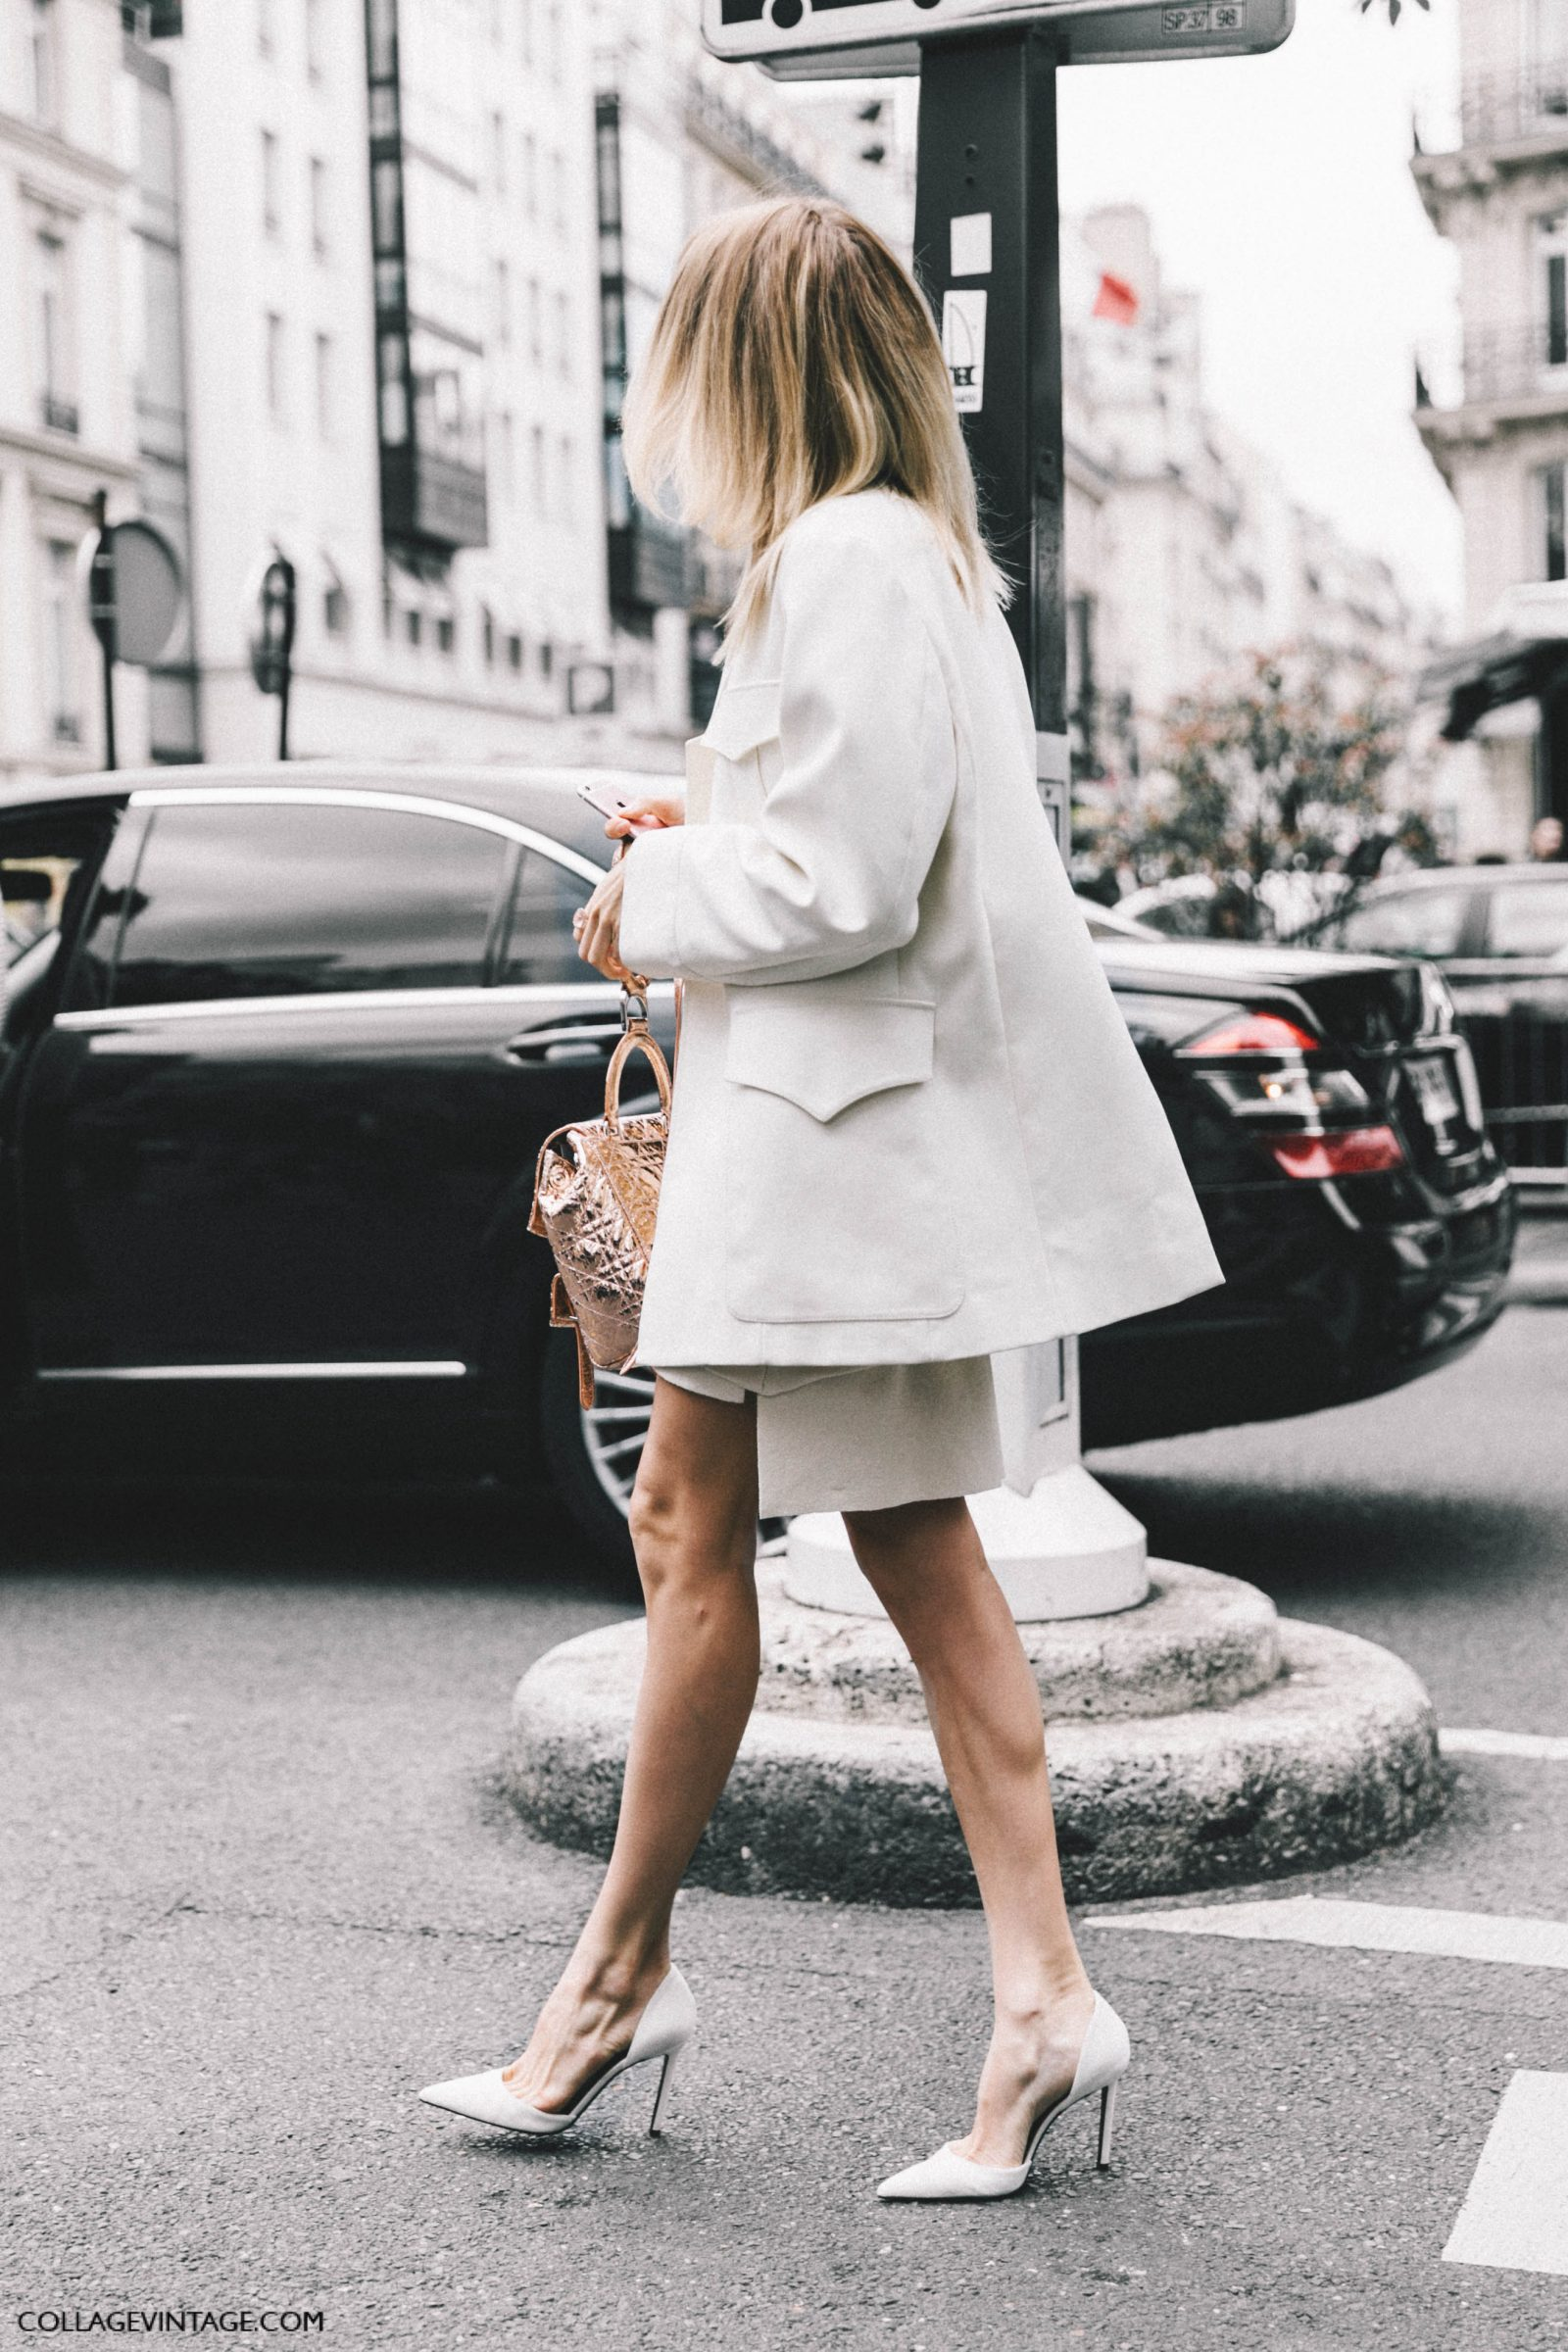 Paris_Couture_Fashion_Week-Collage_Vintage-Street_Style-76